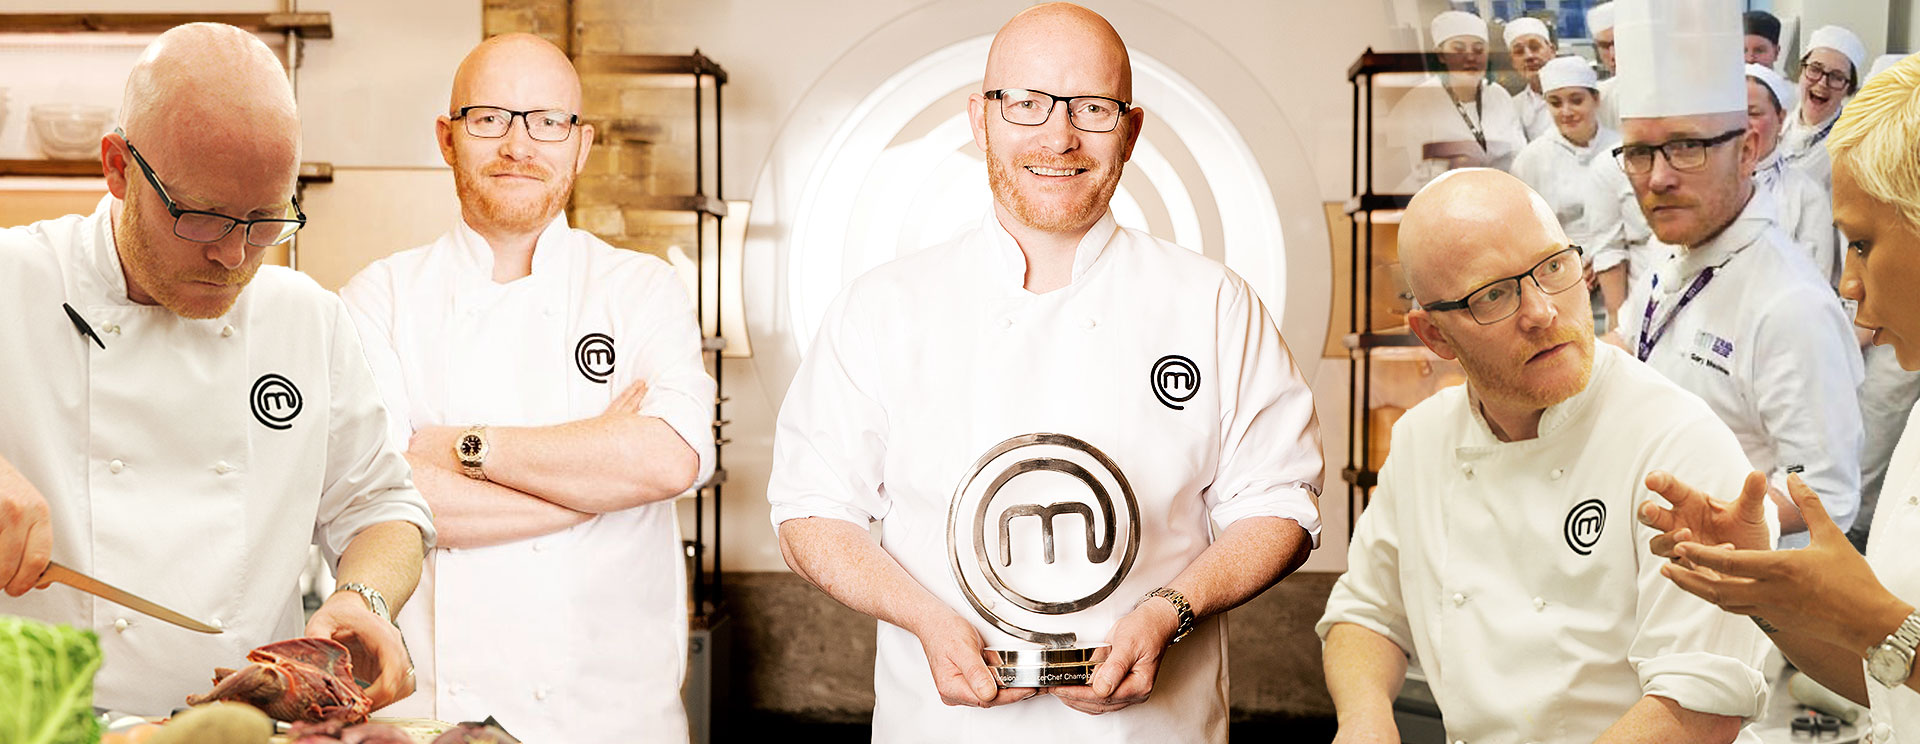 Chef Gary Maclean - Award winning Chef and Winner of MasterChef The Professionals